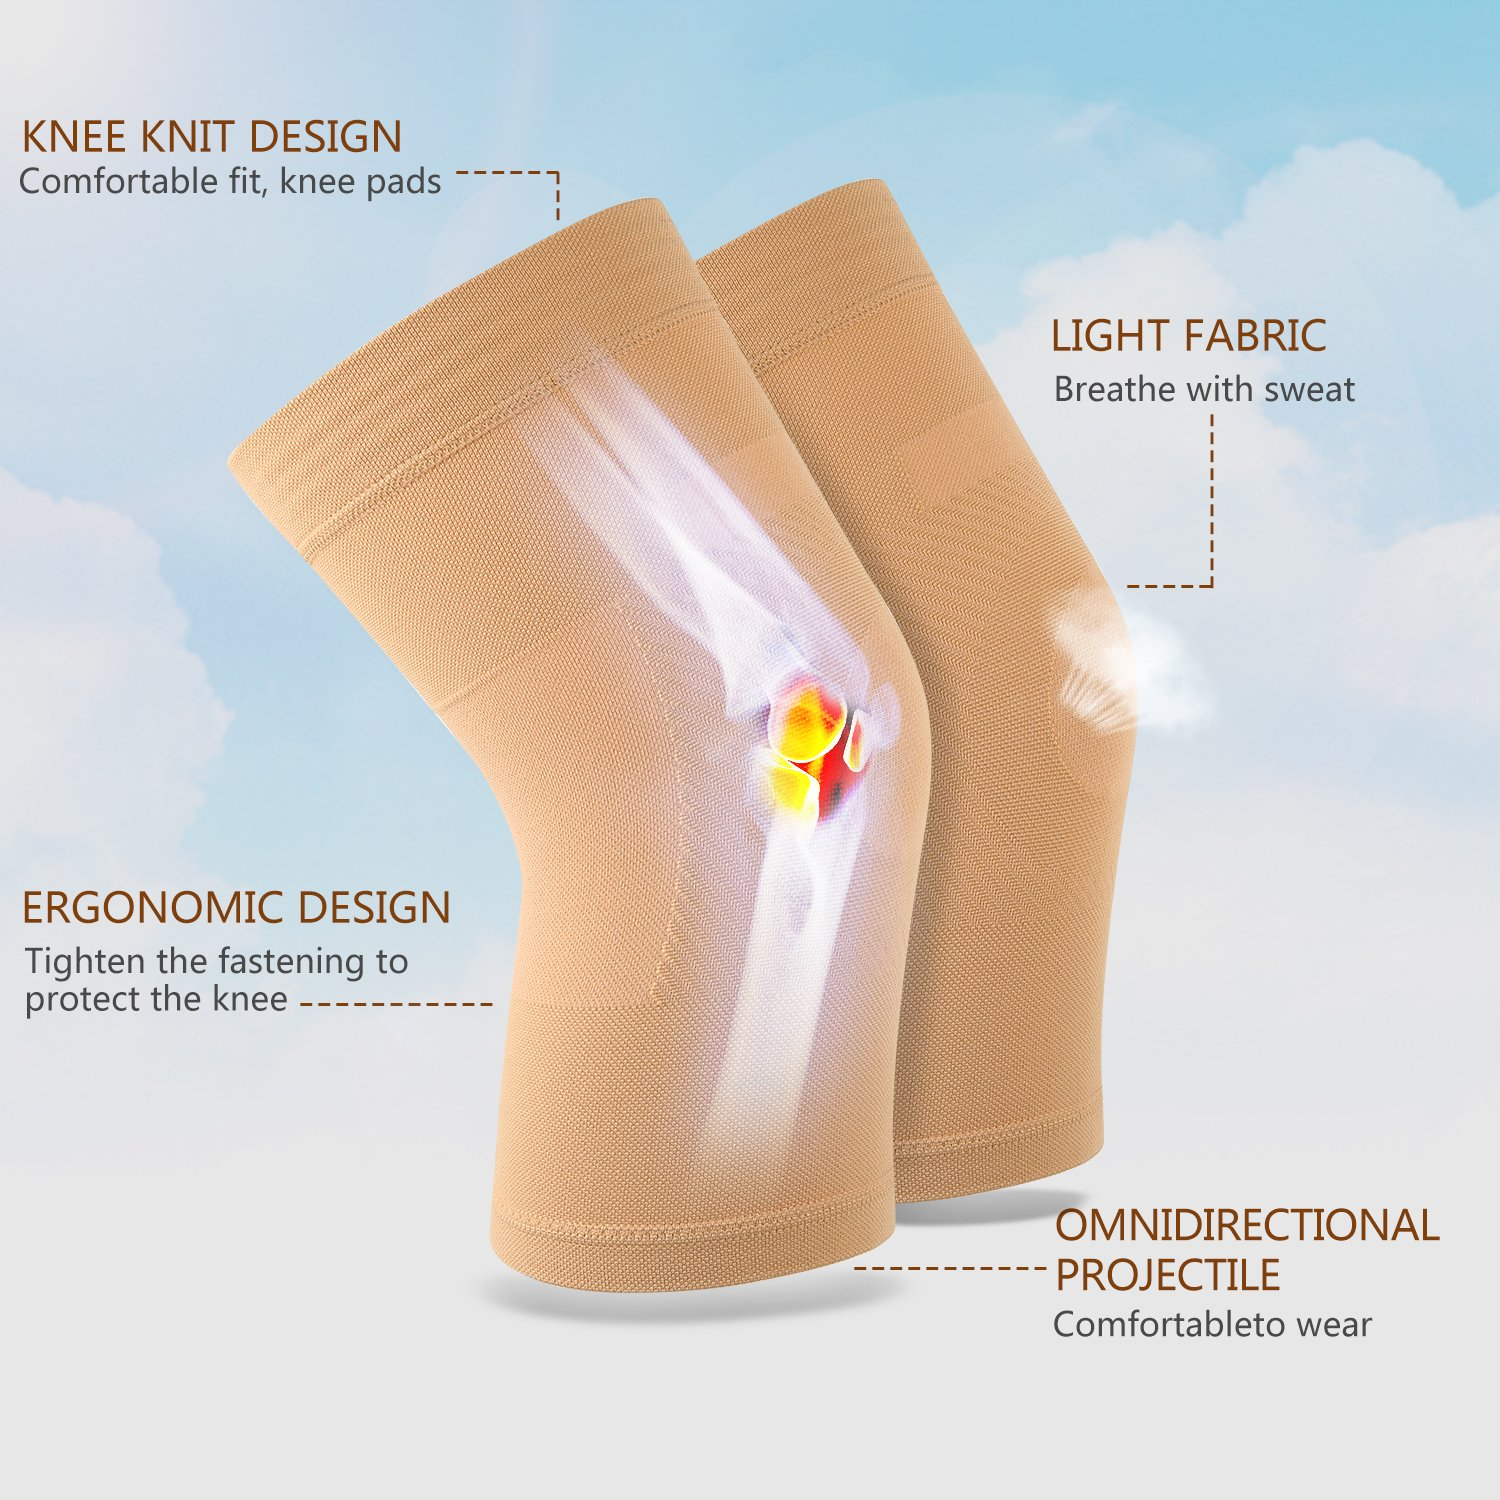 deb3a3876c Amazon.com: Knee Sleeves, 1 Pair, Lightweight Knee Brace Fit for Men &  Women, Knee Compression Sleeves Support for Pain Relief, Joint Pain,  Arthritis, ...